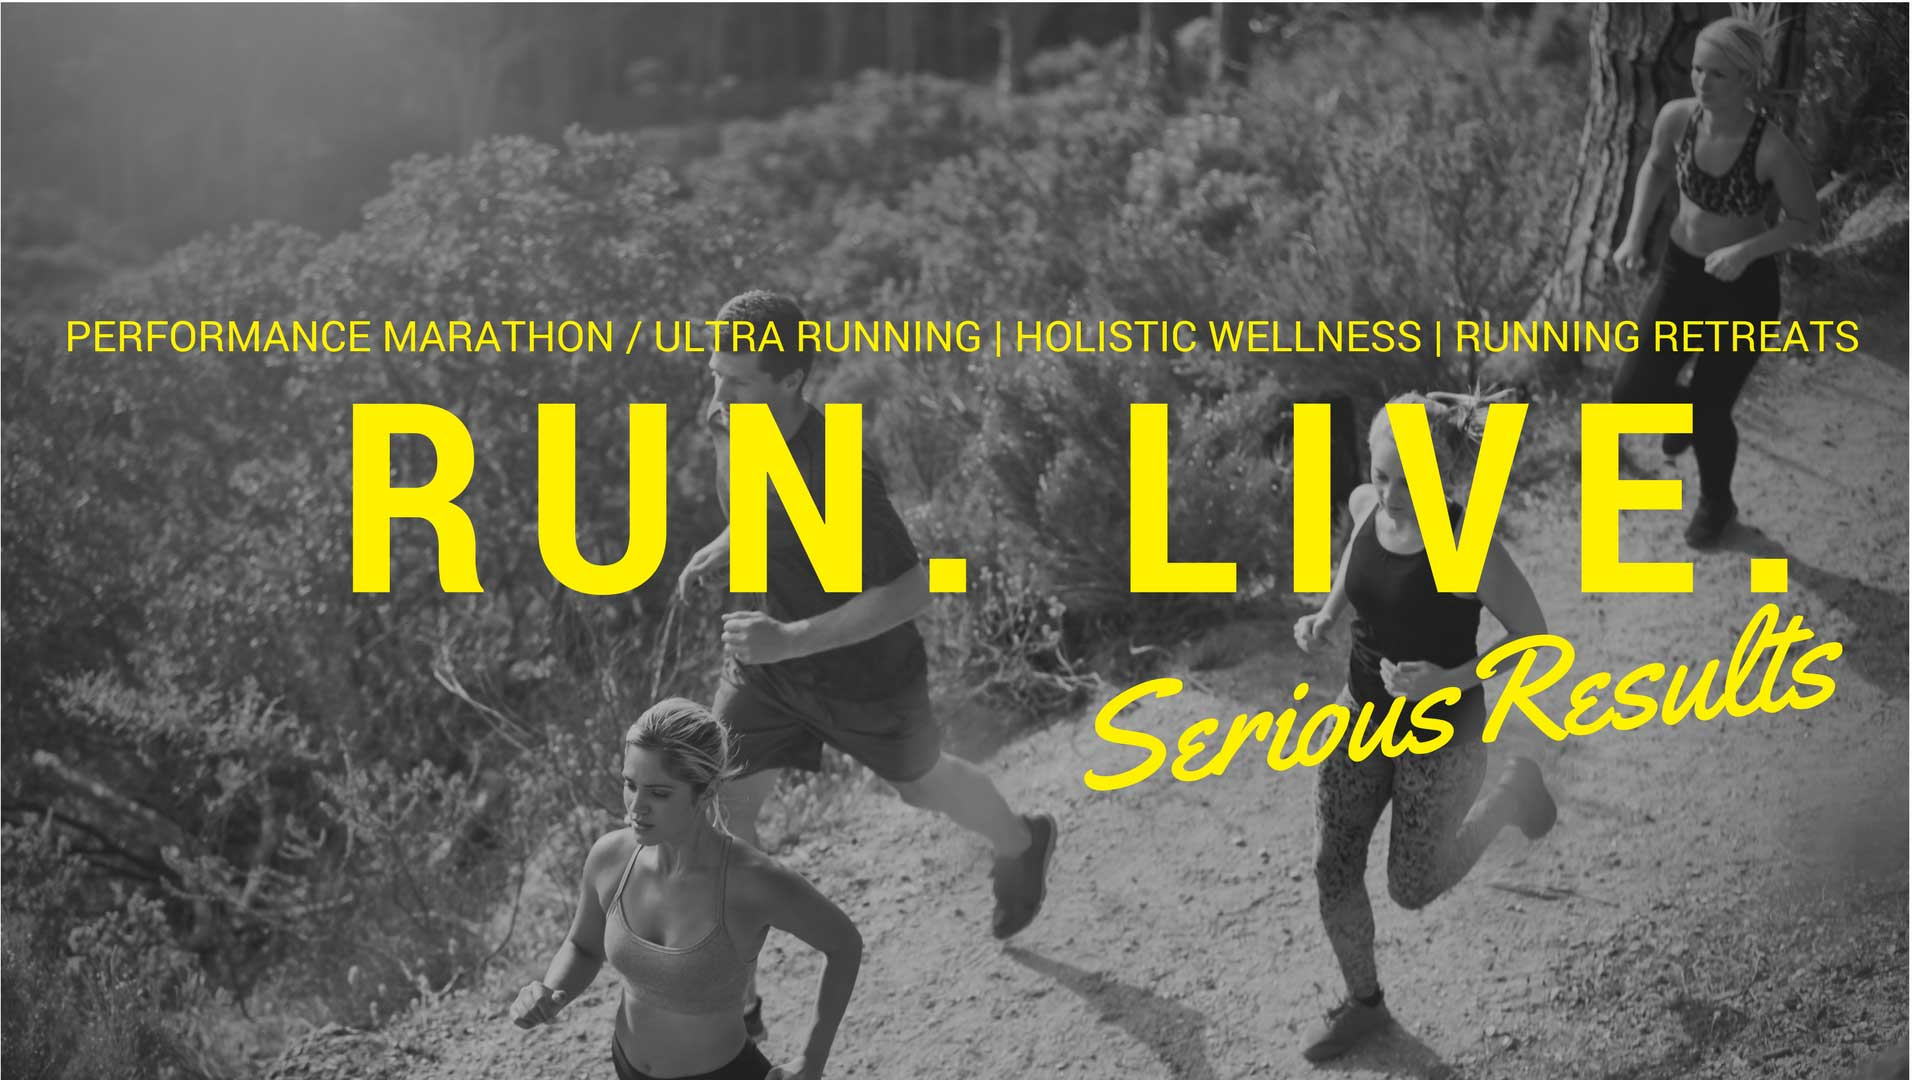 Running with Life, LLC: Performance Marathon and Ultramarathon Coaching, Holistic Wellness Coaching, Running Retreats